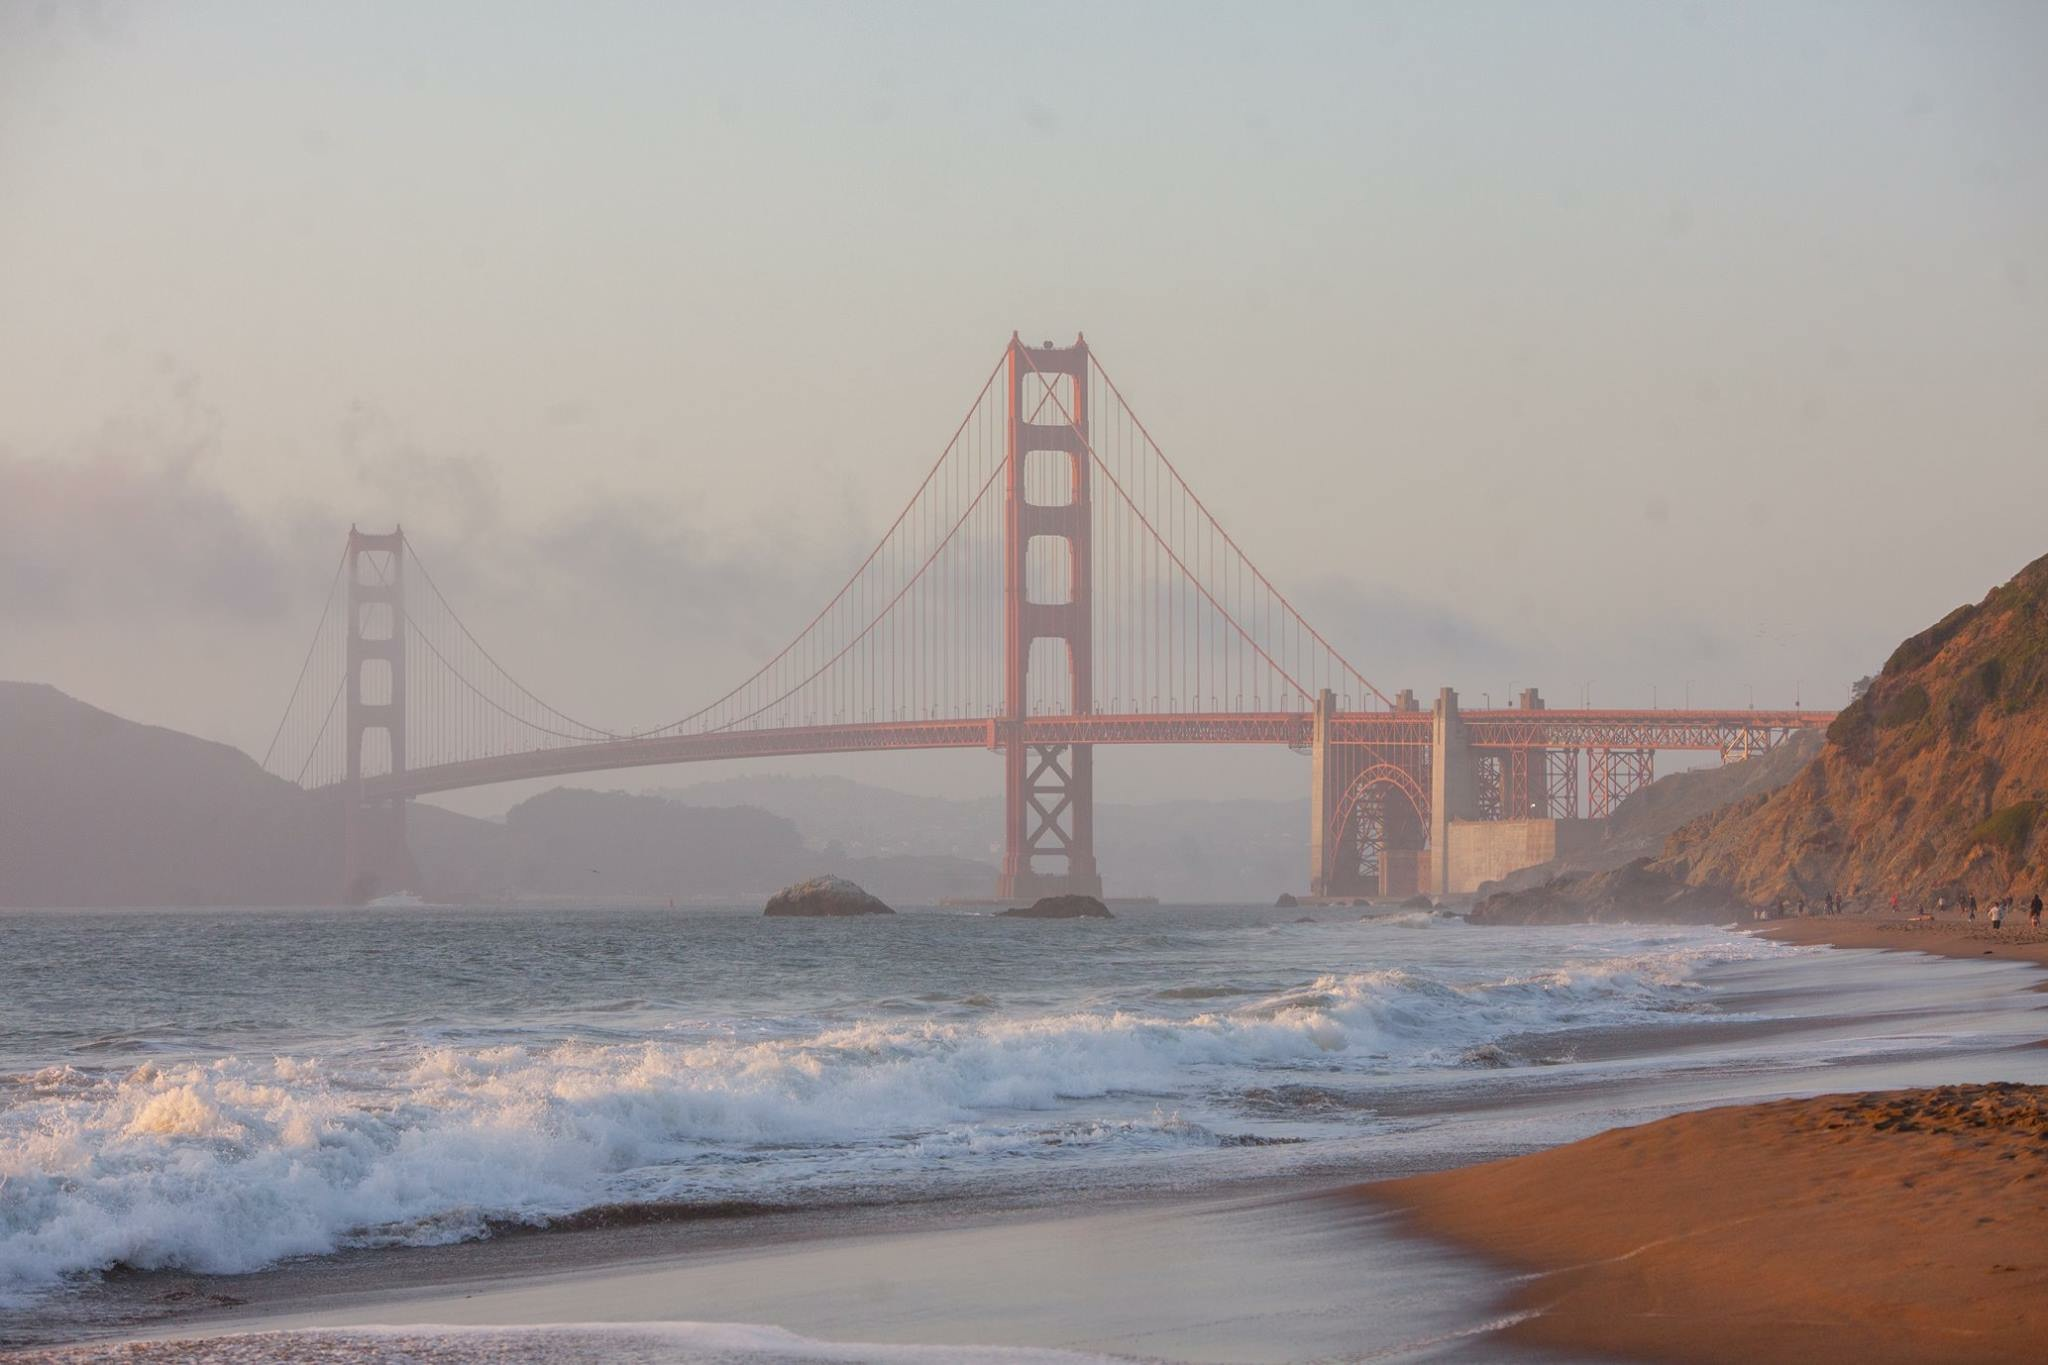 Beer, Camera Stuff and San Francisco - A side by side comparison of the changing and demanding worlds of brewology and photography